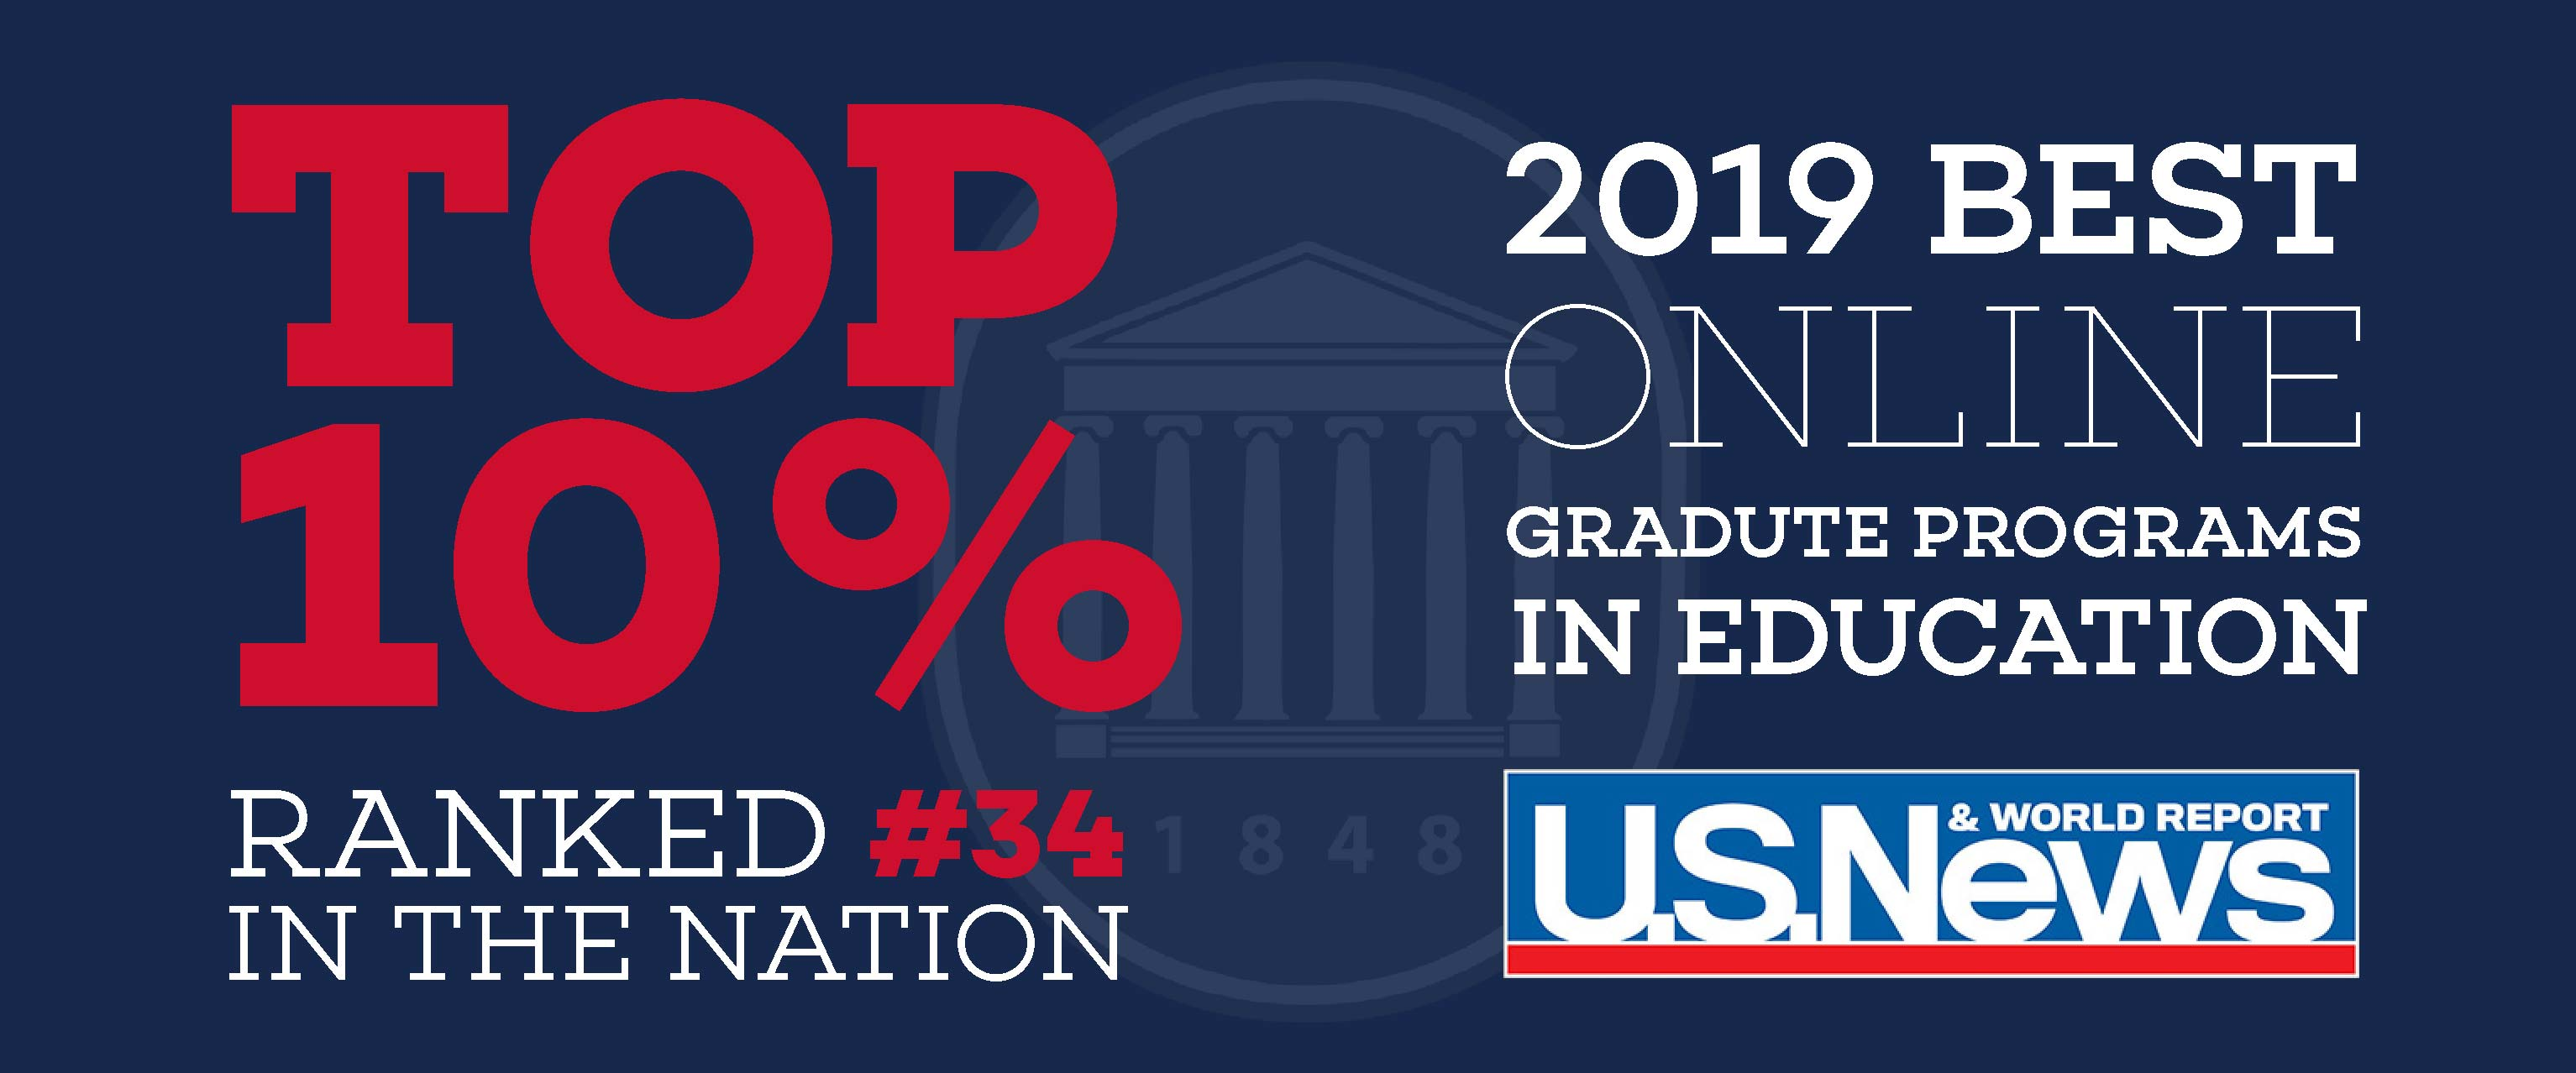 U.S. News & World Reports ranked us in the top 10% of graduate education programs!